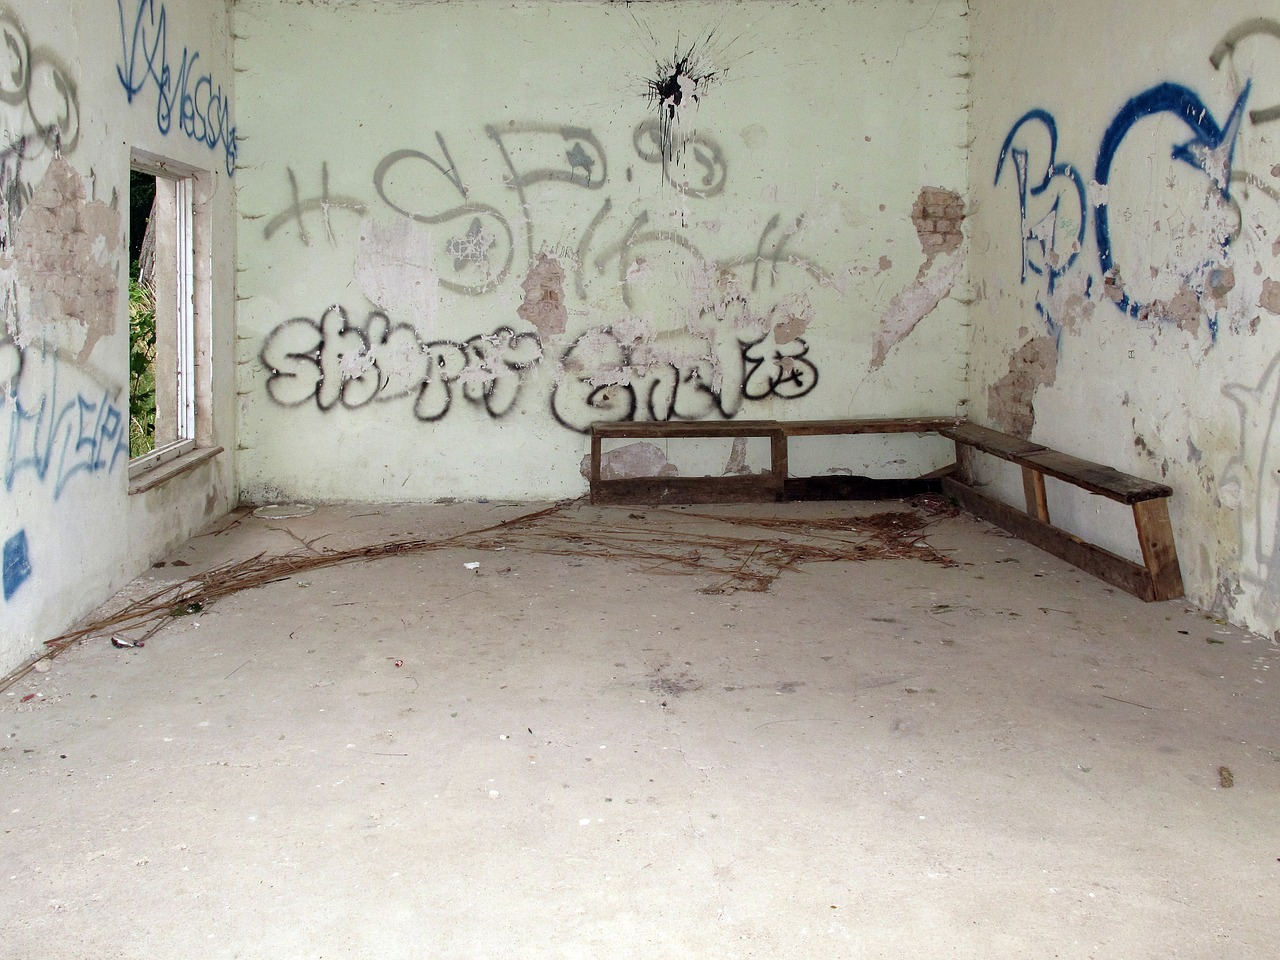 leave graffiti lost places free photo